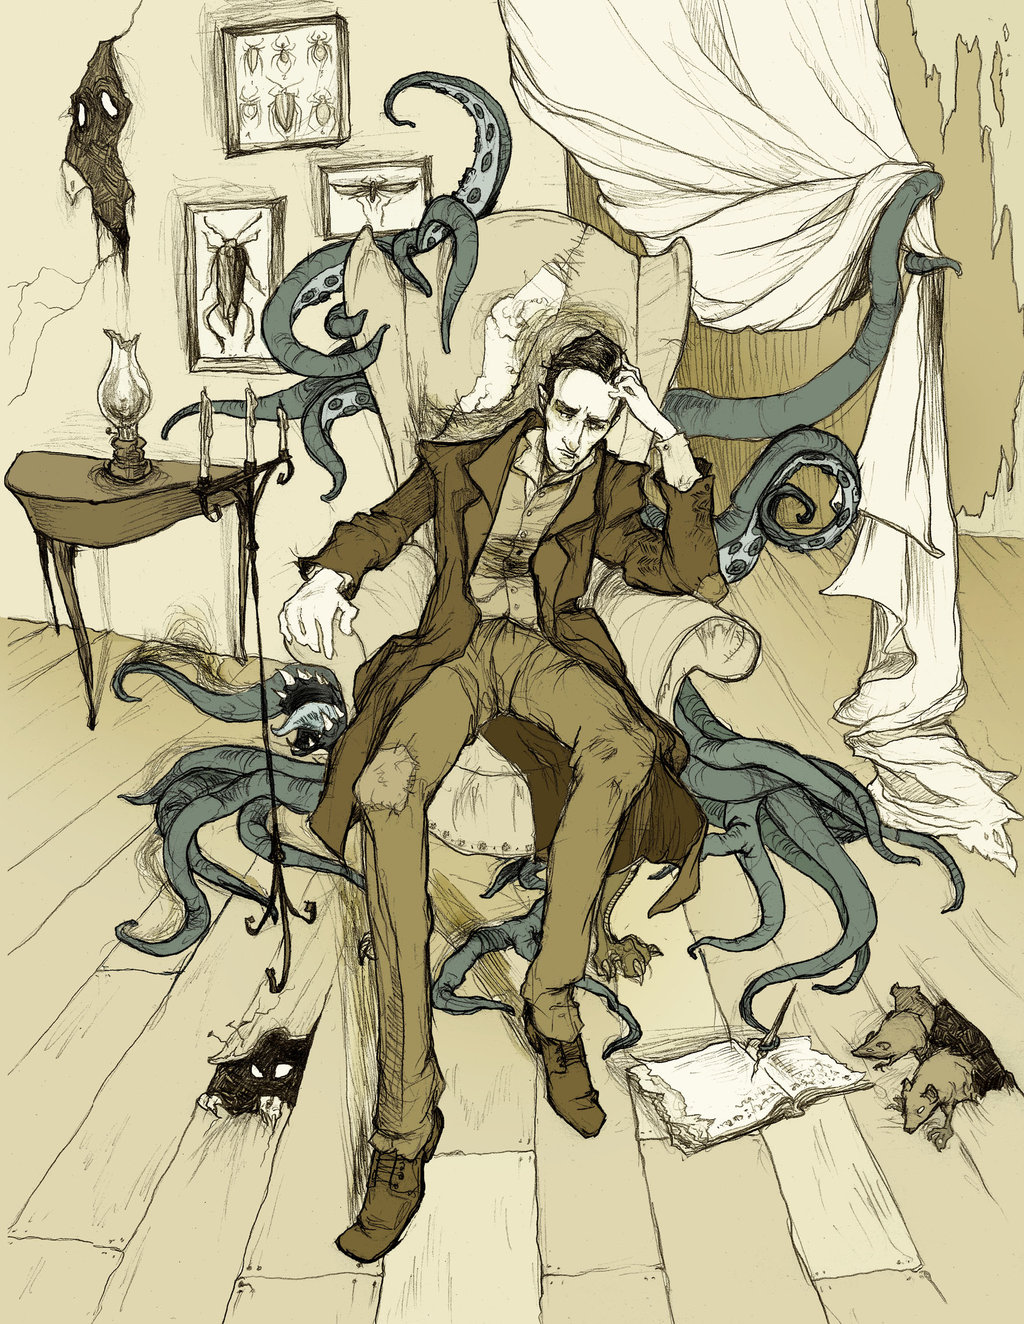 H_P__Lovecraft_by_Abigail Larson